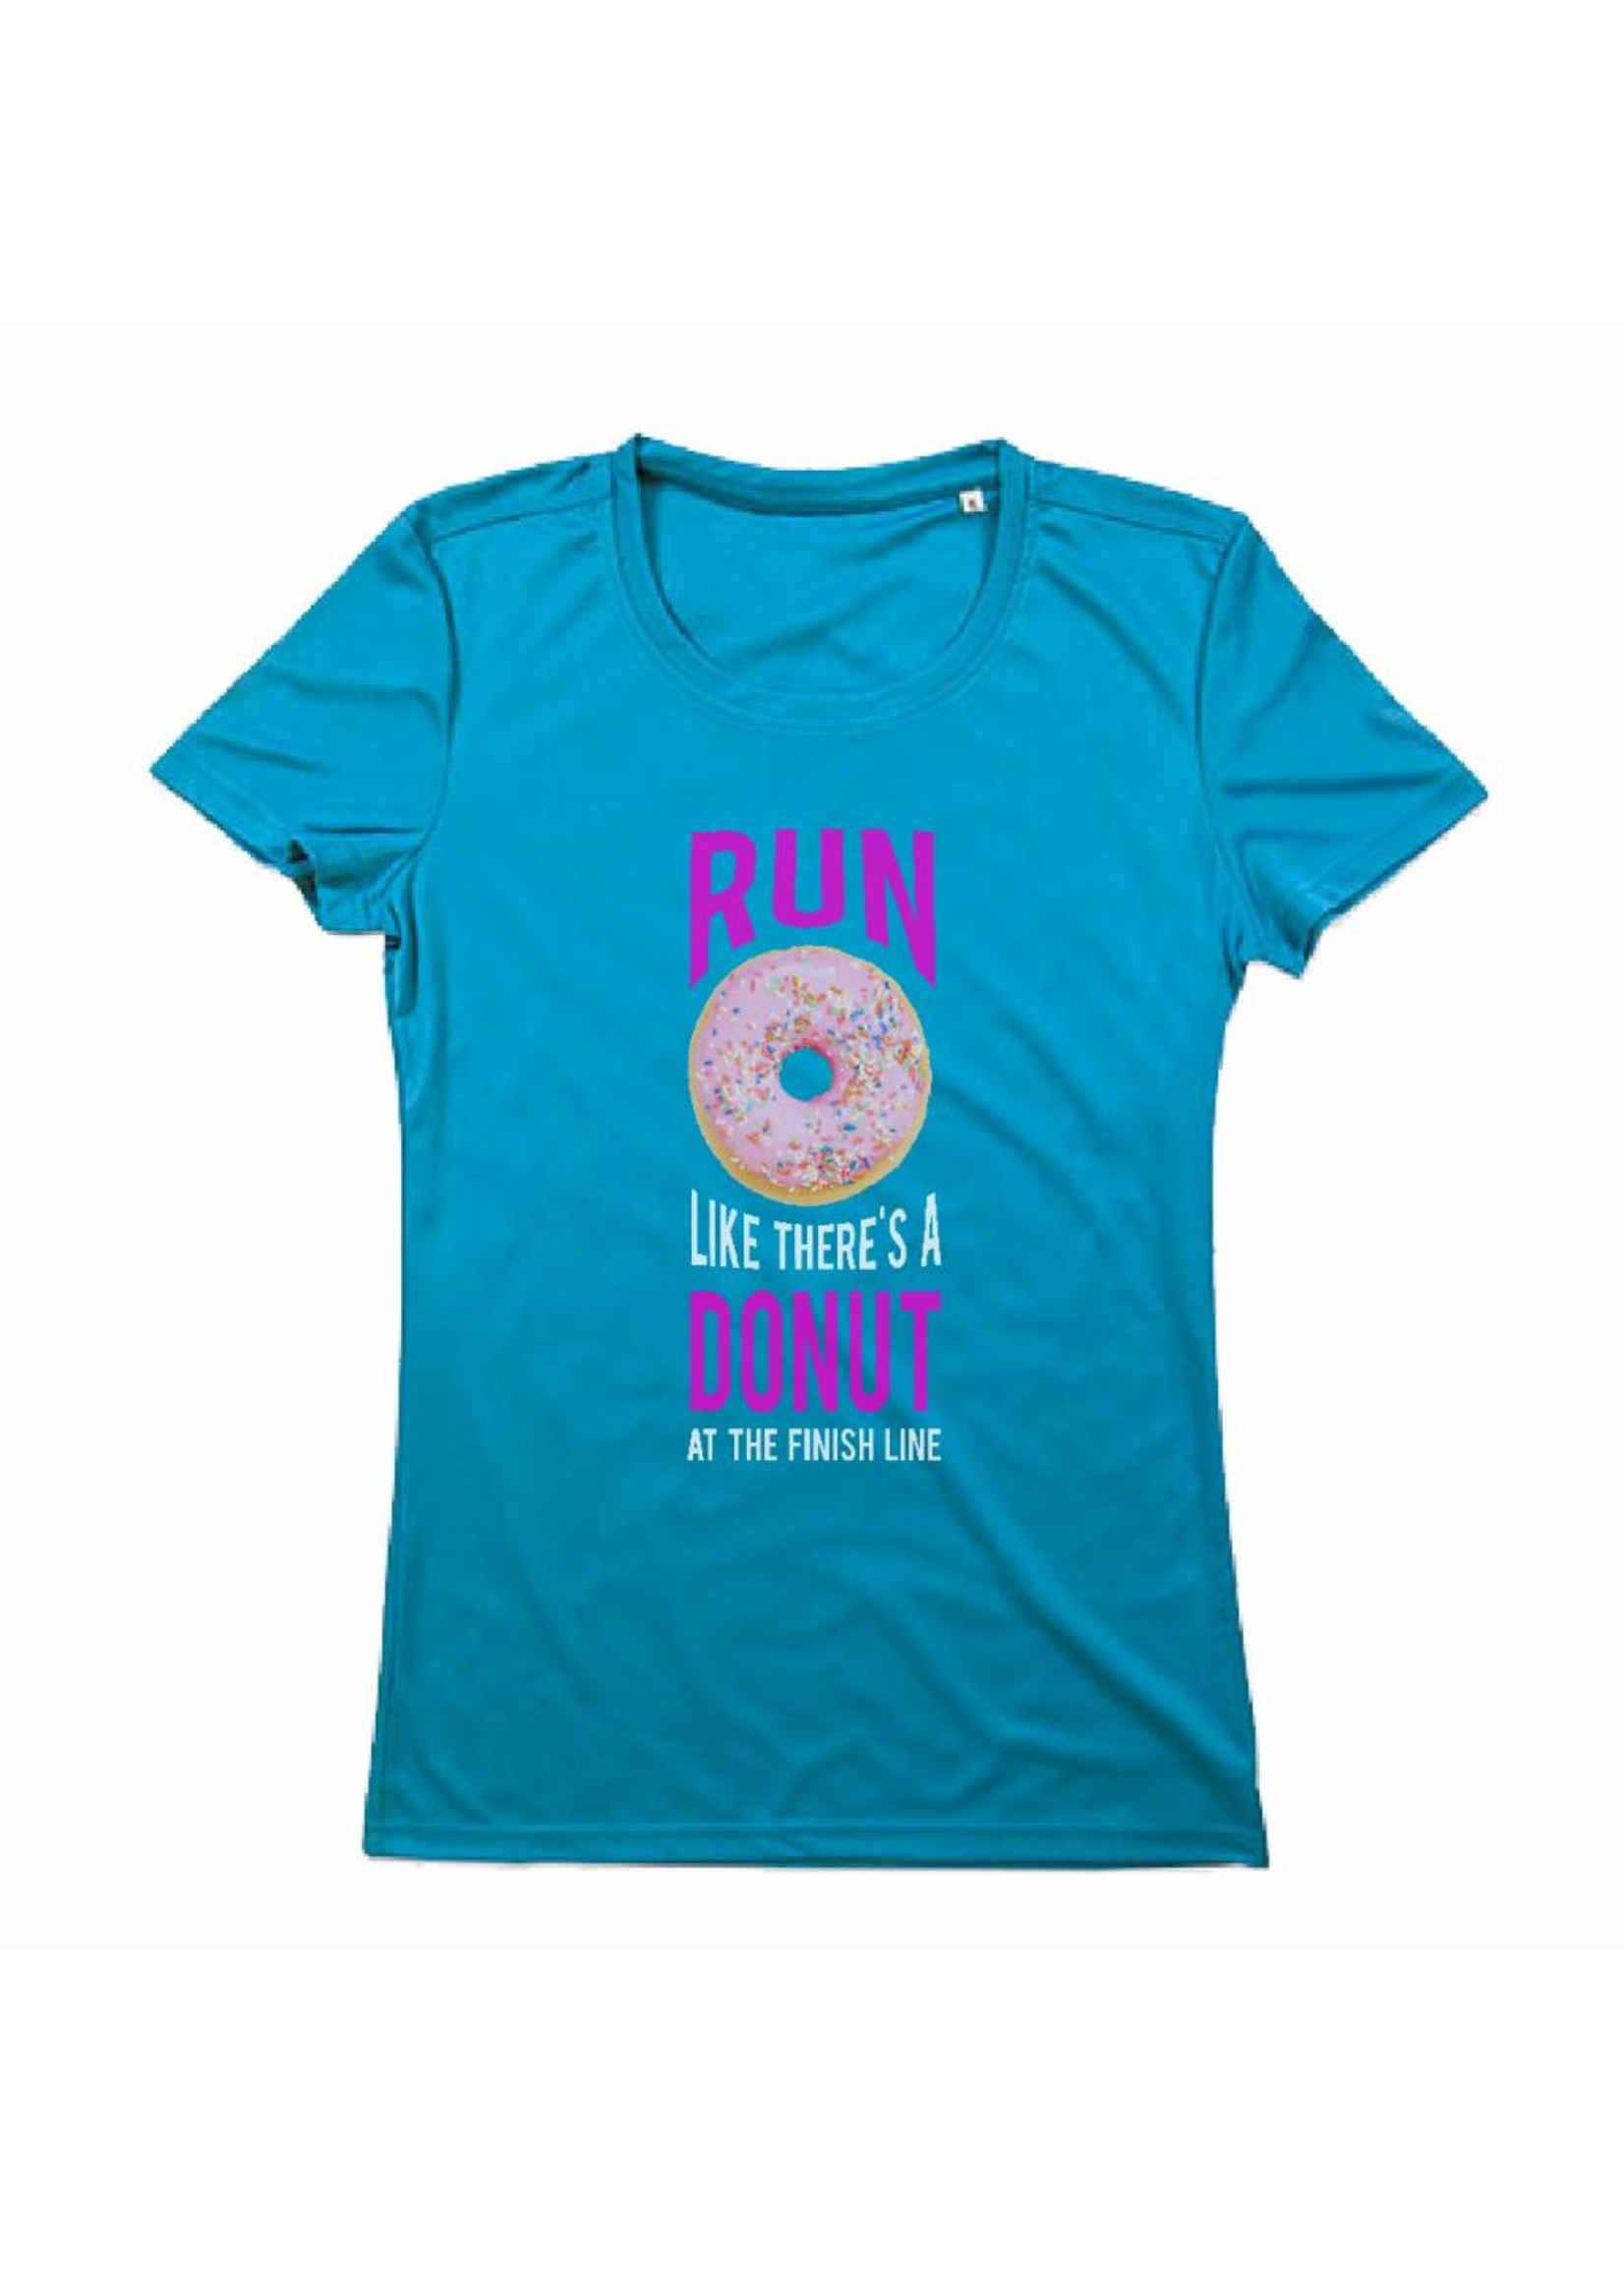 Sport shirt quick&dry - Run like there's a donut at the finish line